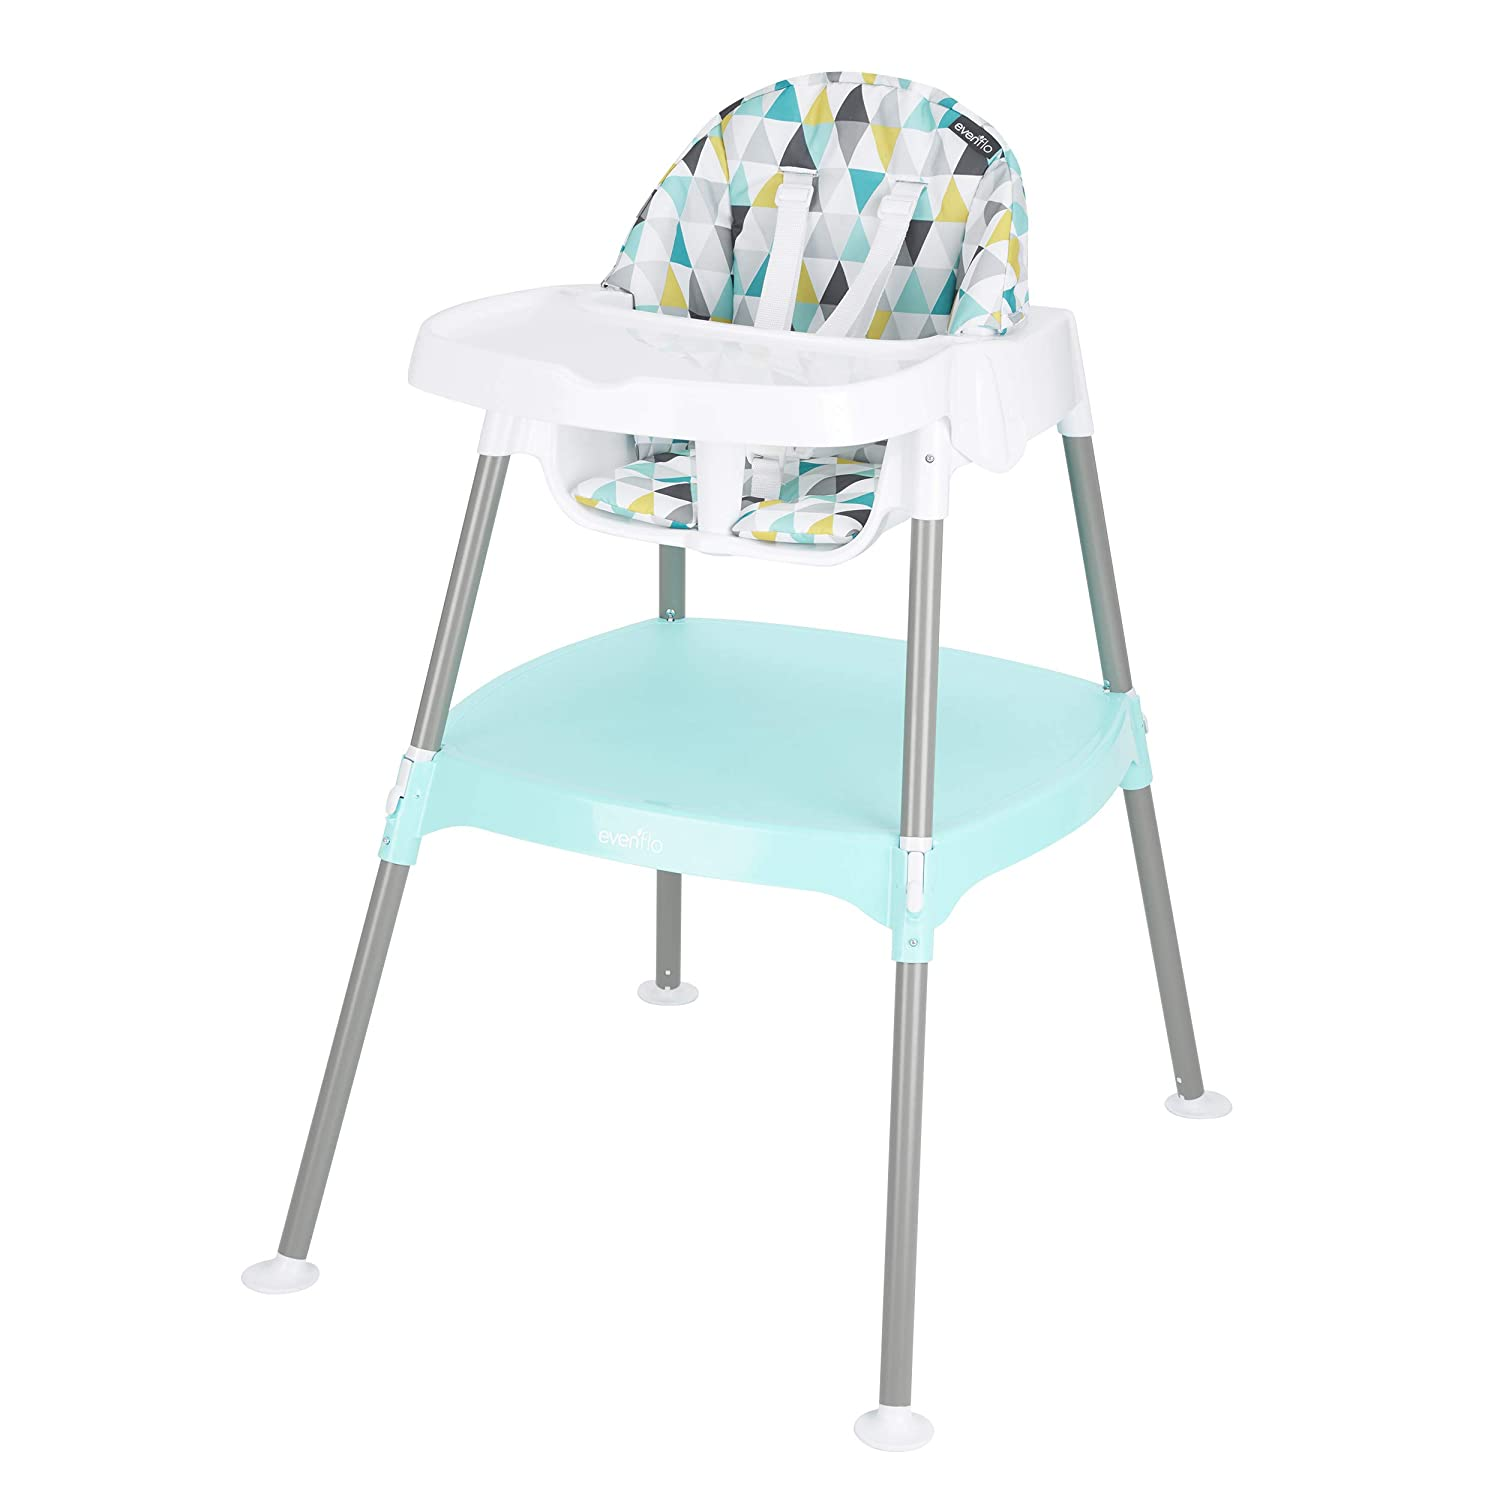 Evenflo 4-in-1 Eat & Grow Convertible High Chair